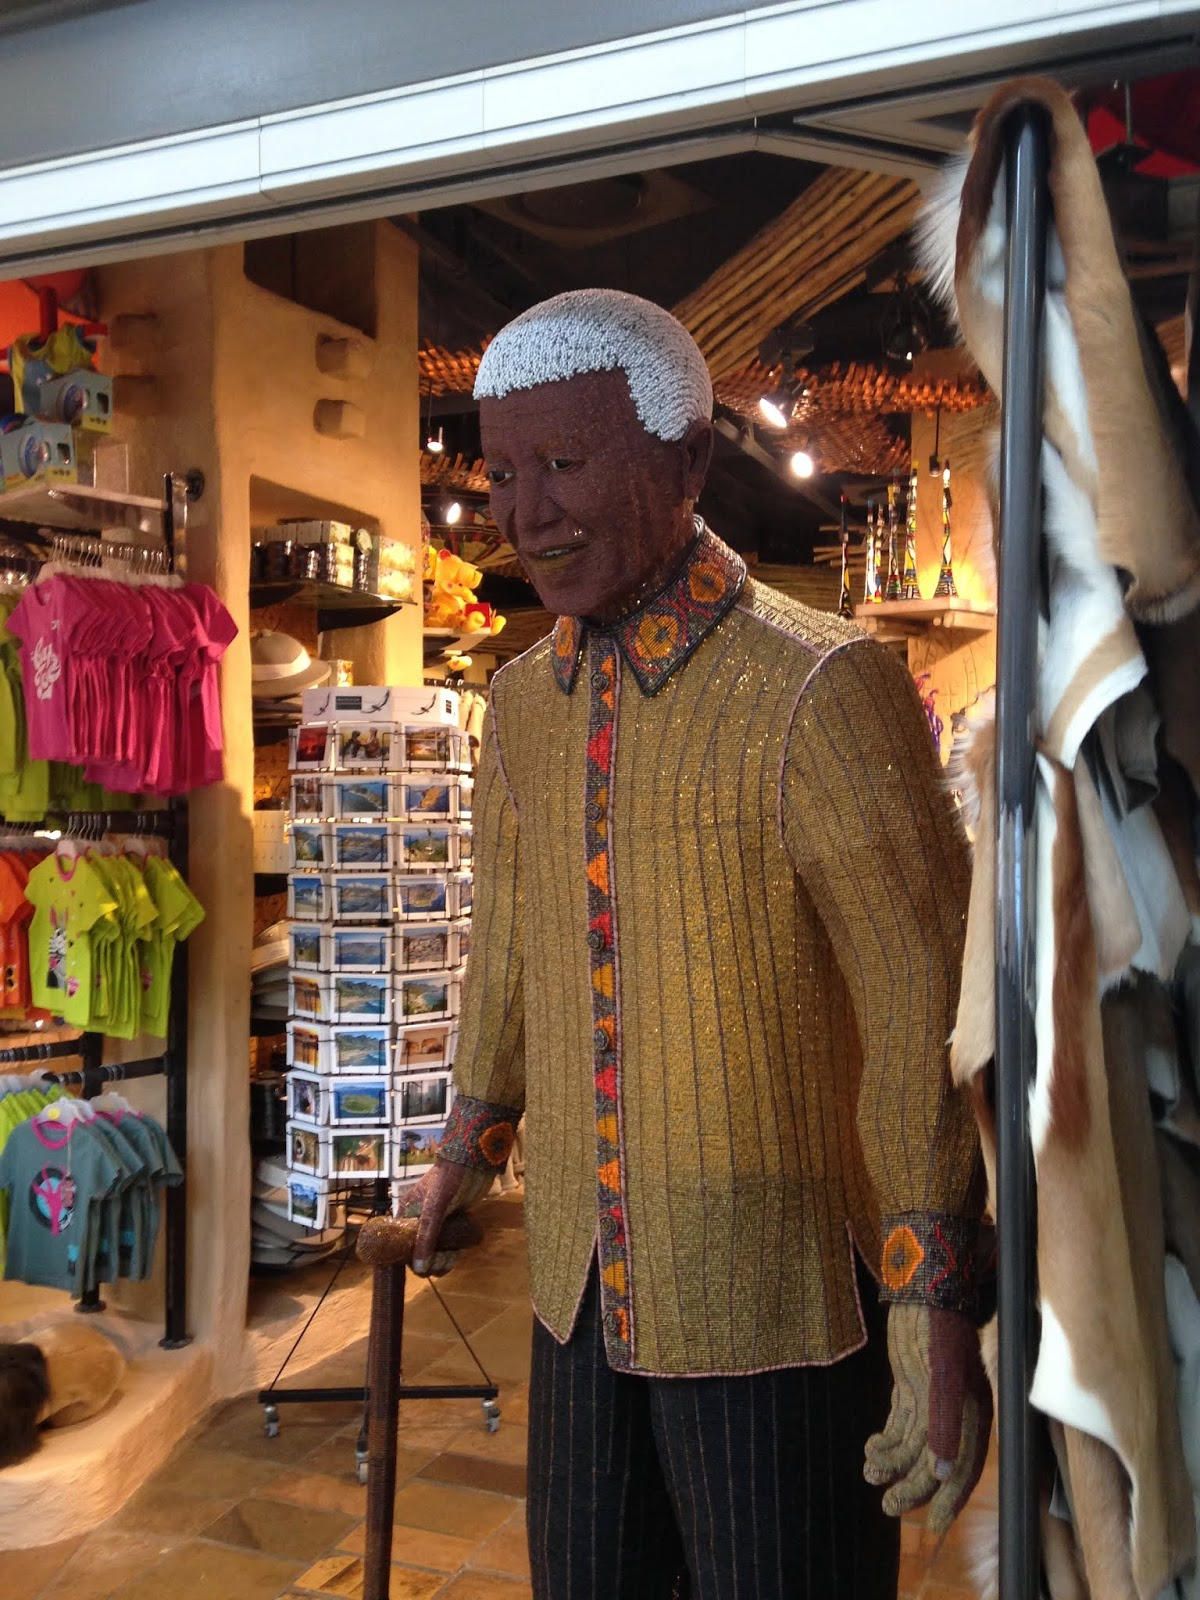 Lifesize Mandela figure made of beads